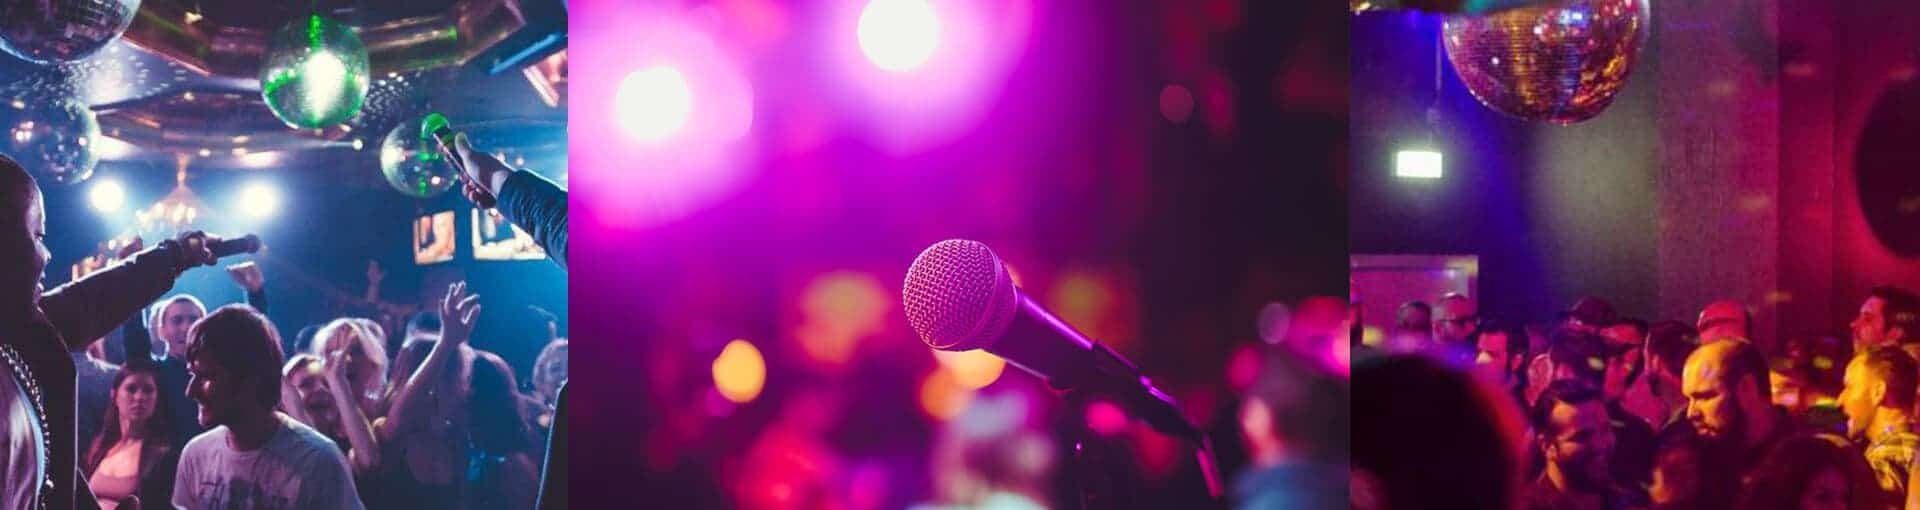 Karaoke Clubs in Yerevan